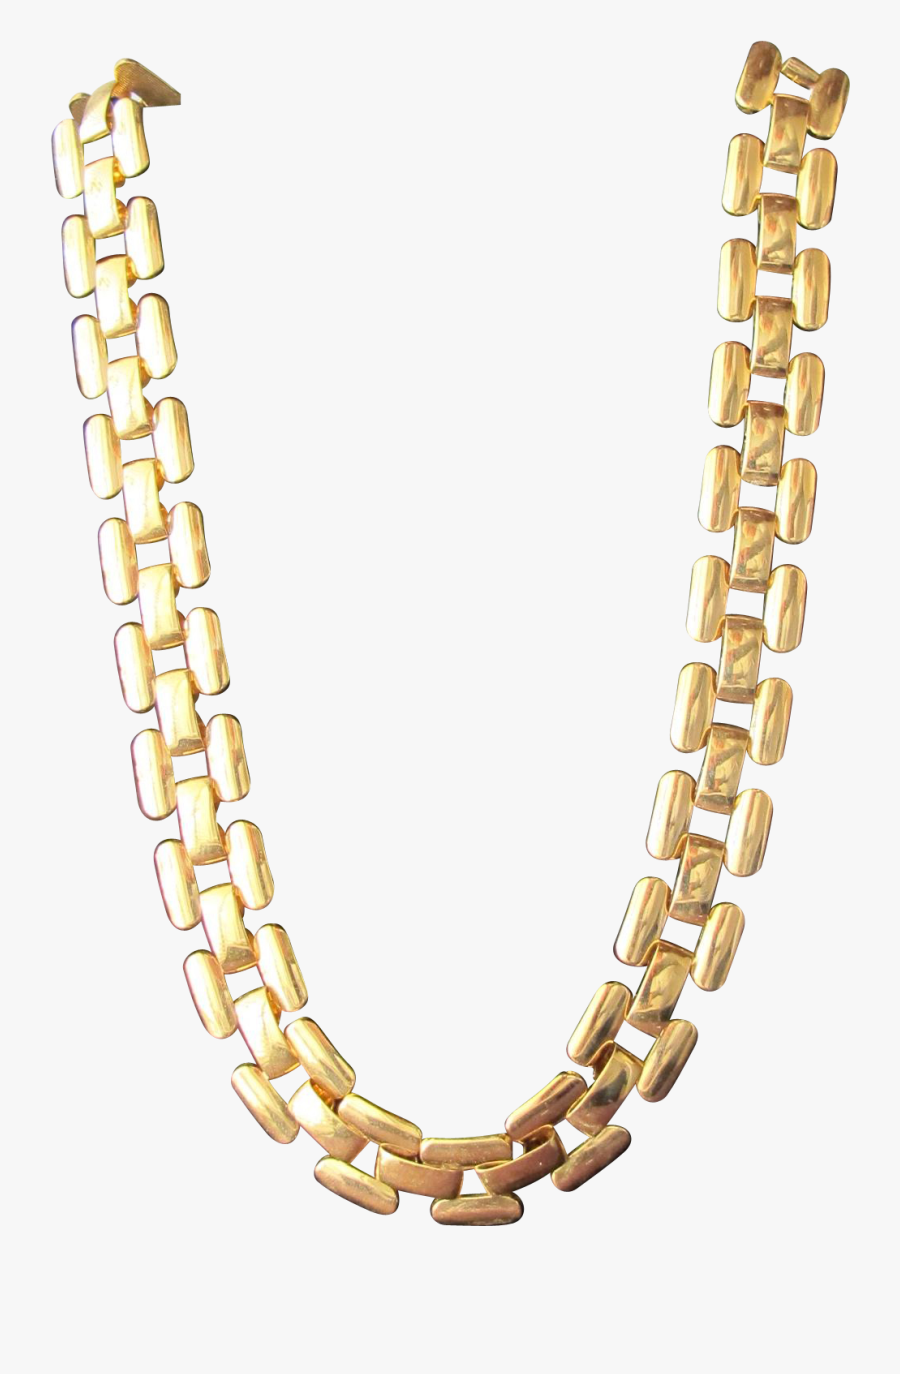 Clip Art Chain Png For.